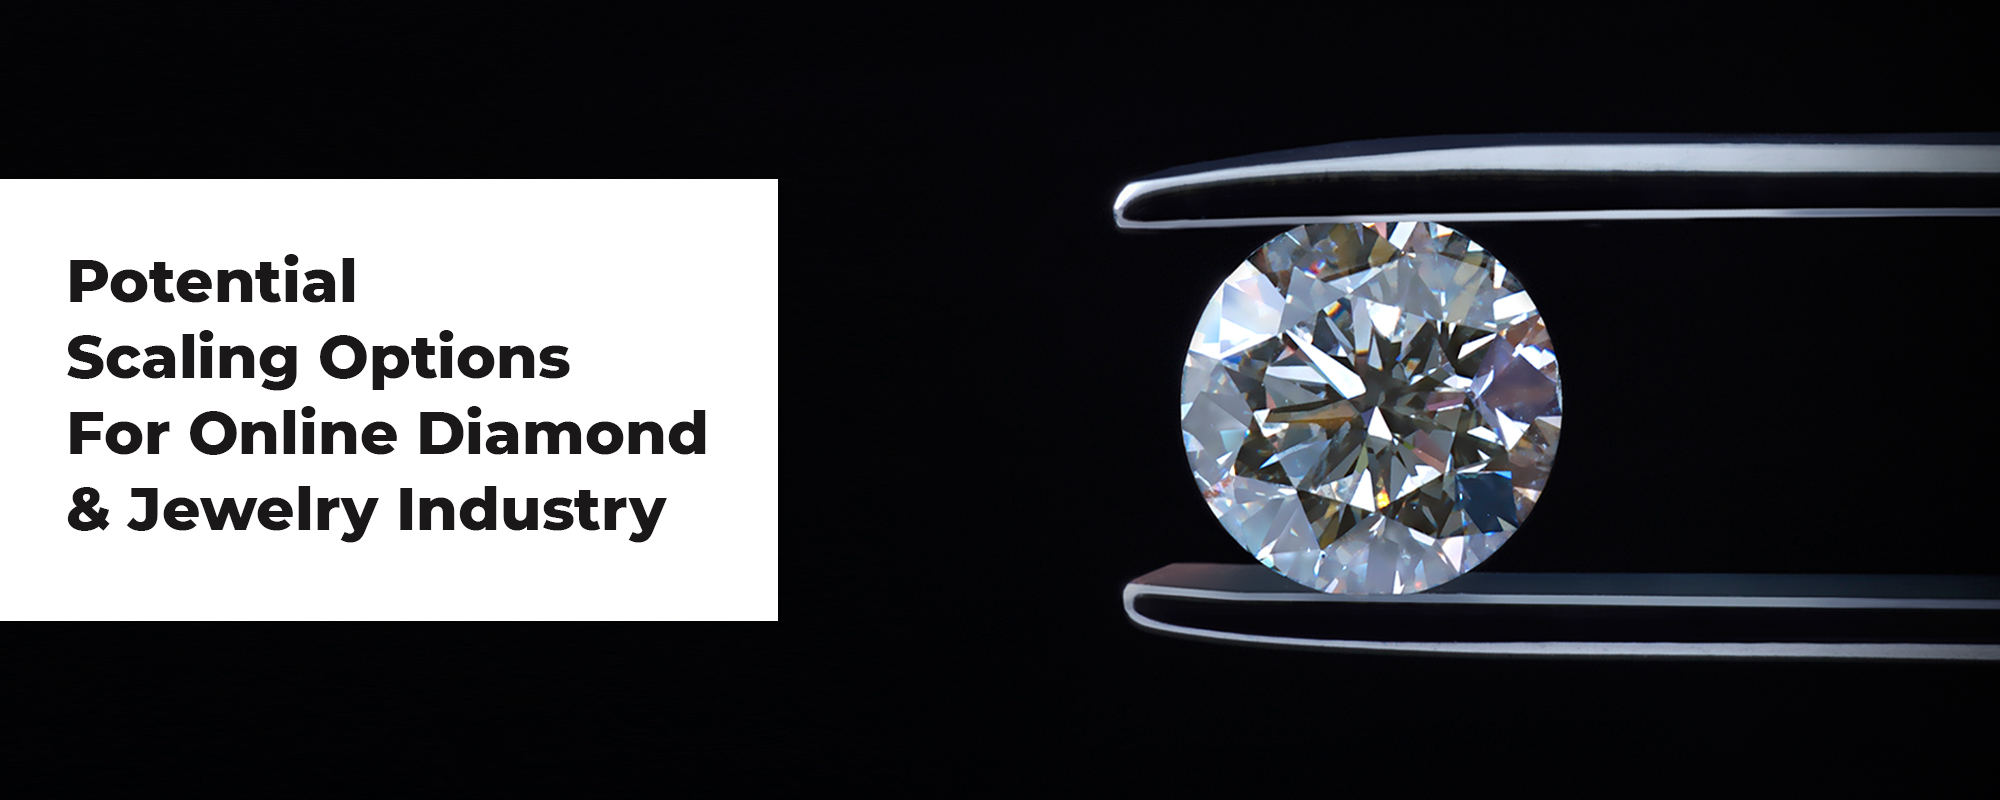 Online Diamond and Jewelry Industry: Solutions, Integrations and Potential Scaling Options